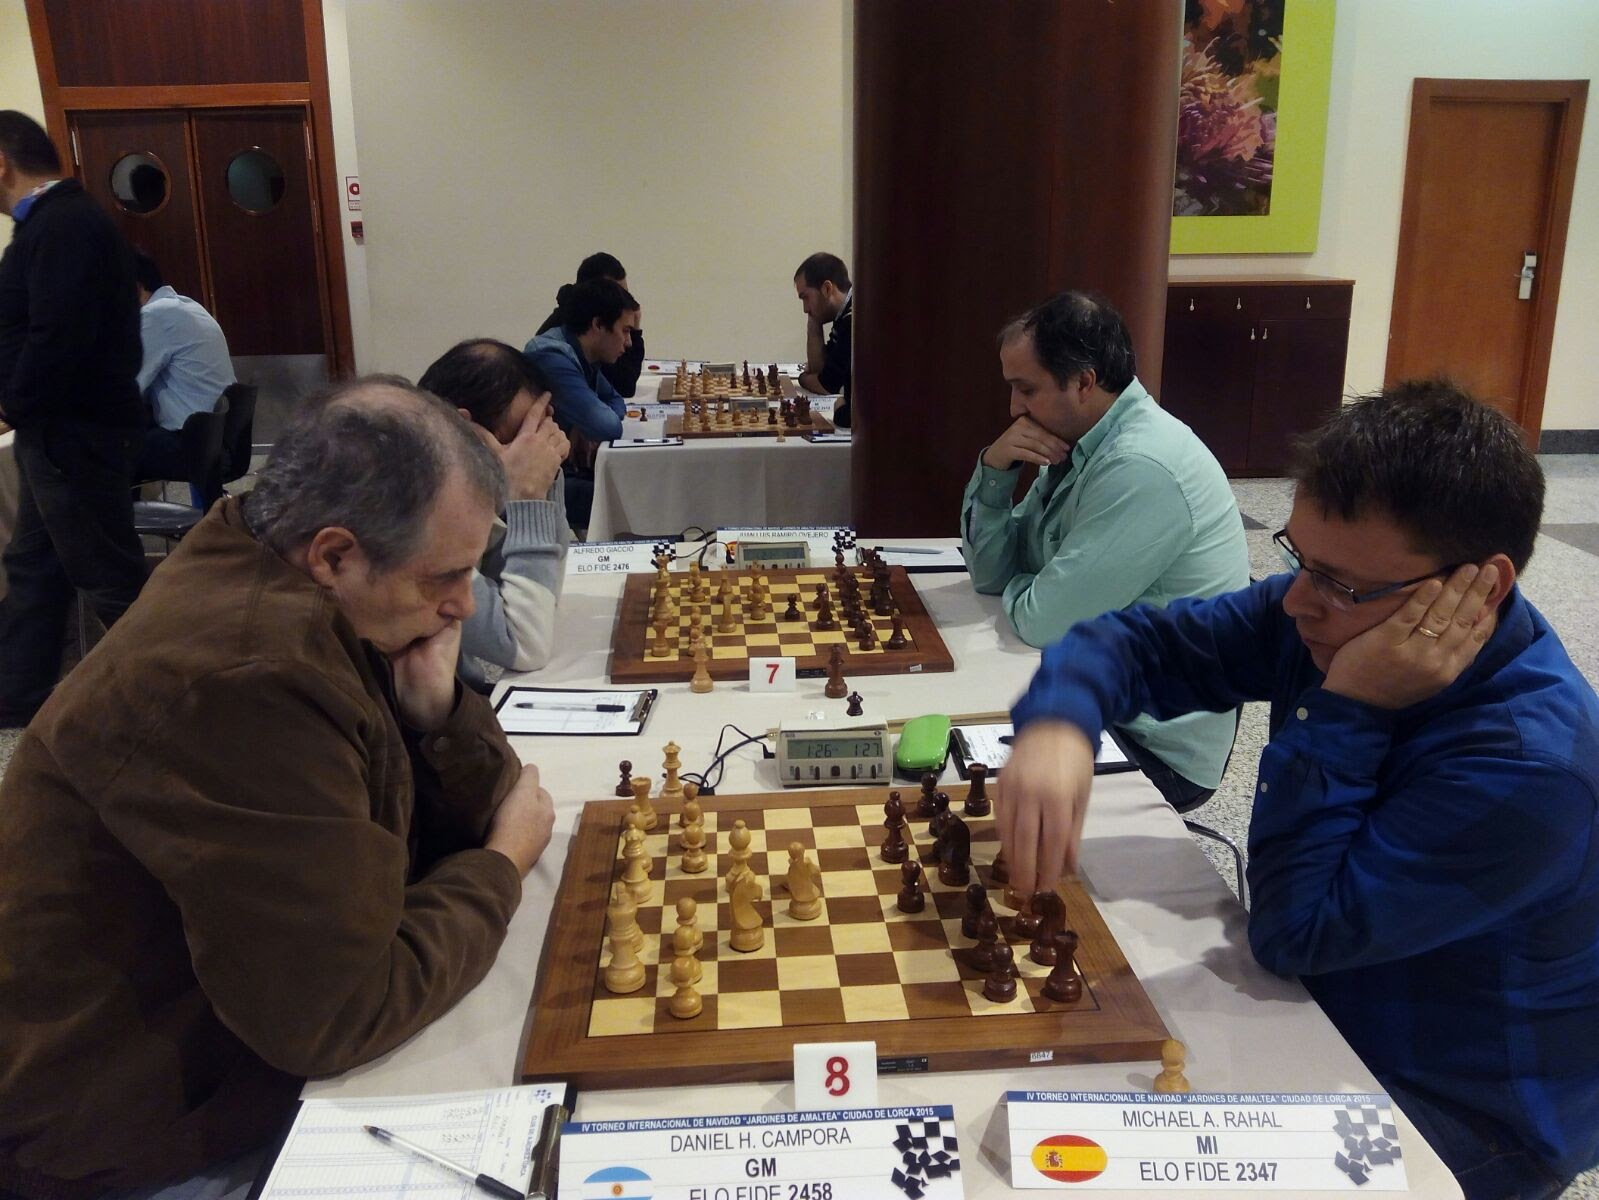 GM Daniel Campora vs MI Michael Rahal